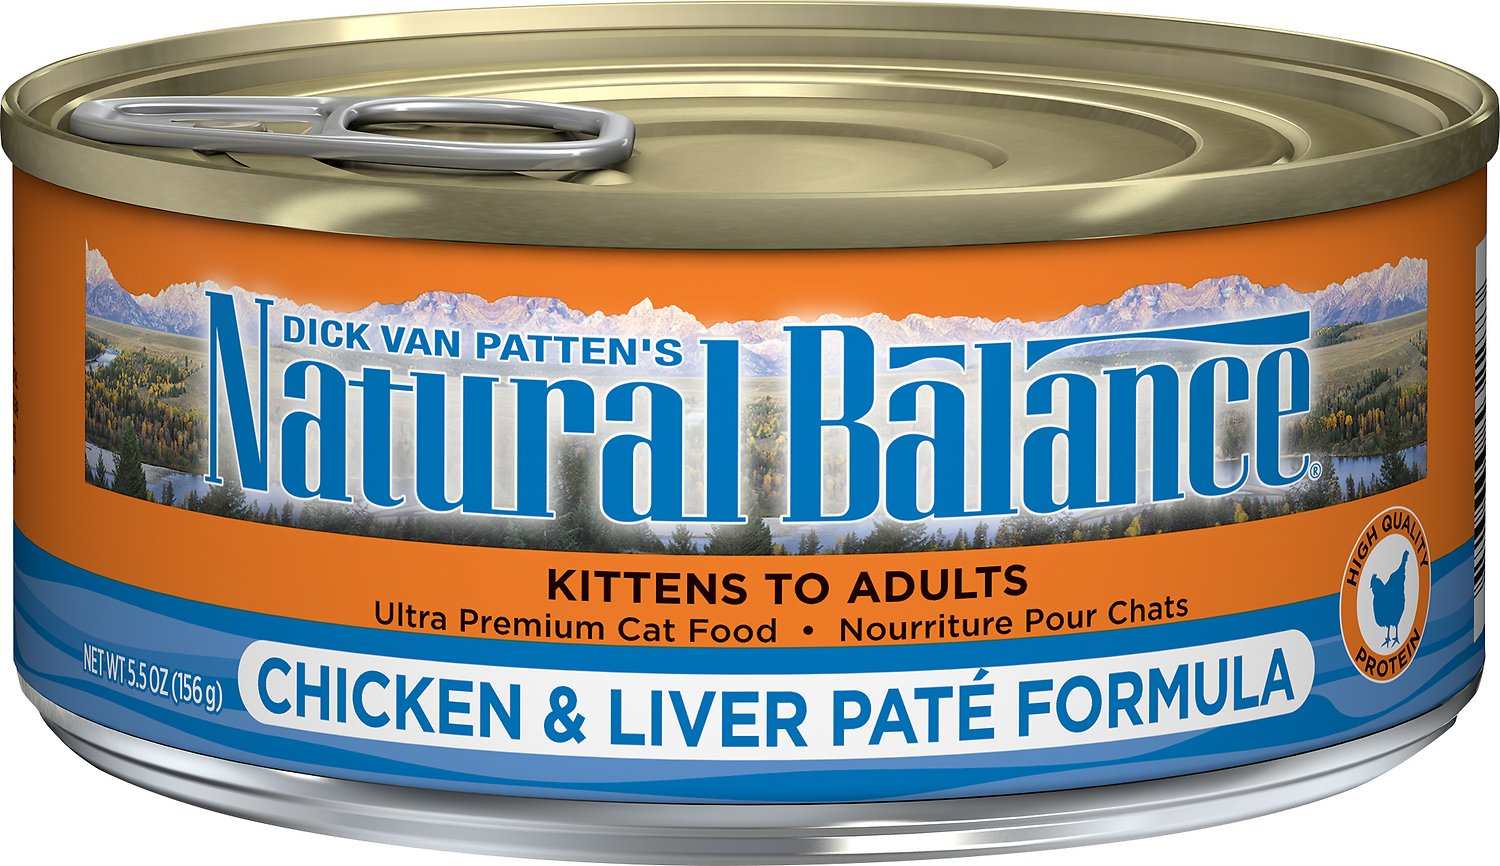 Natural Balance Ultra Premium Chicken & Liver Pate Formula Canned Cat Food Image